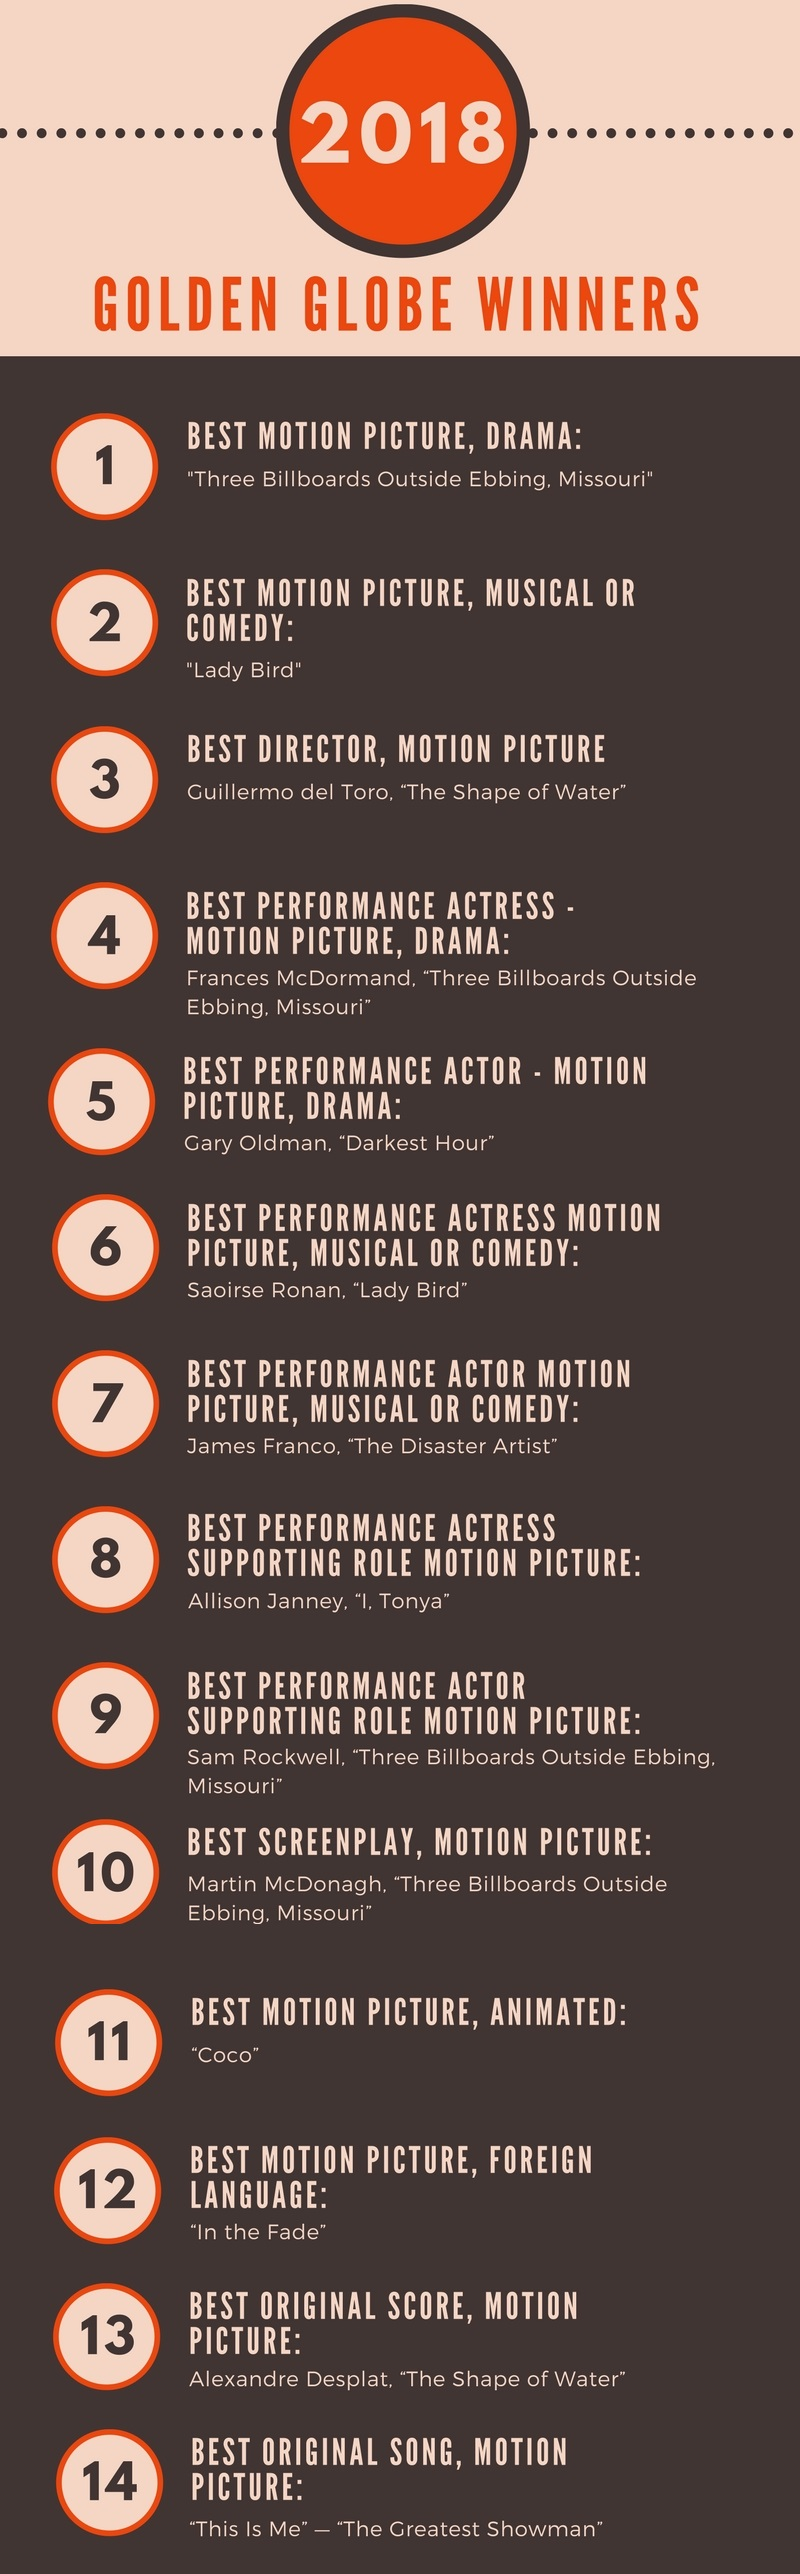 golden globe 2018 movie winners infographic